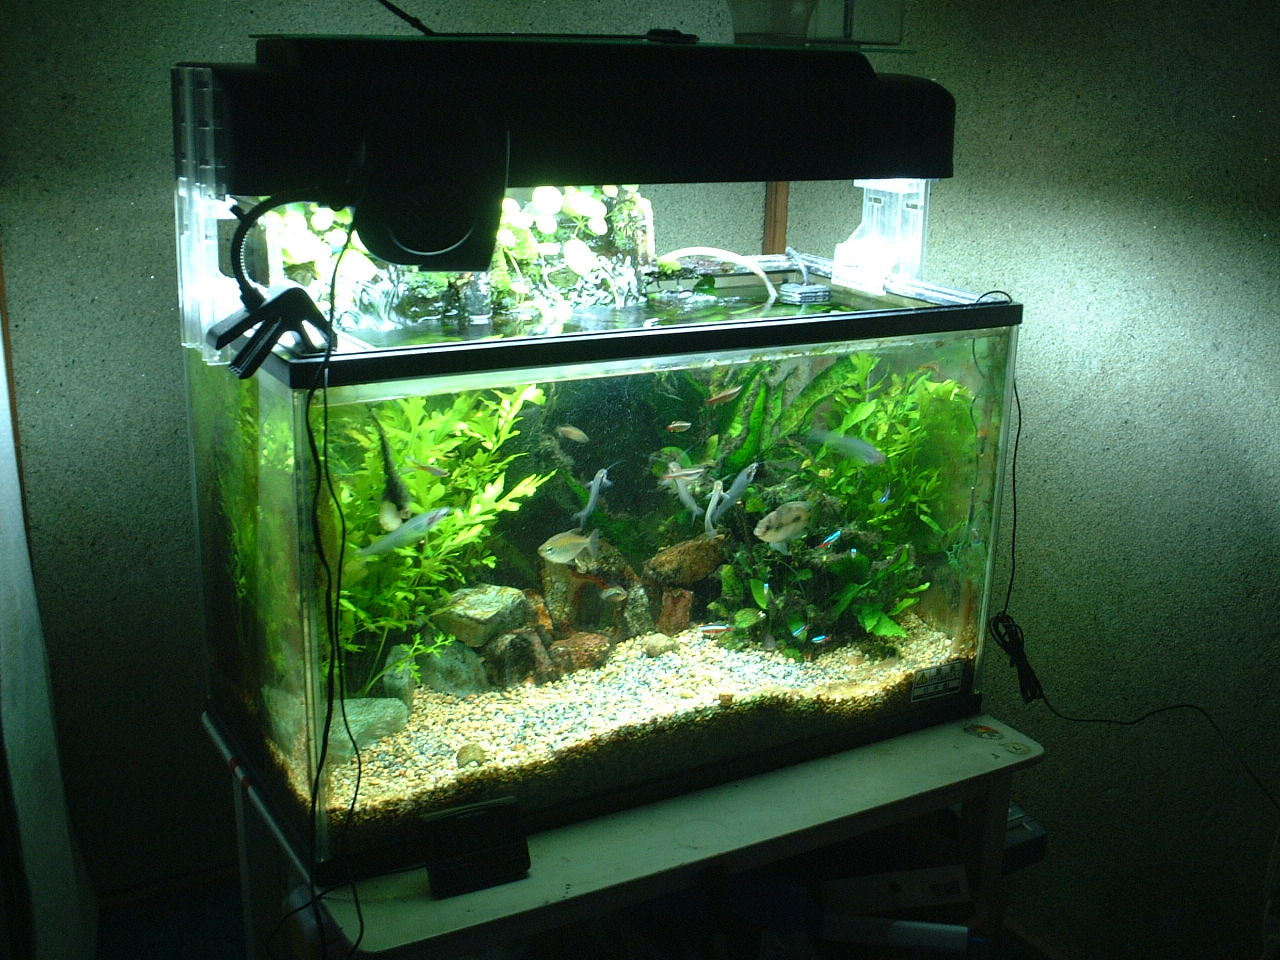 File:Aquarium 60cm.JPG - Wikipedia